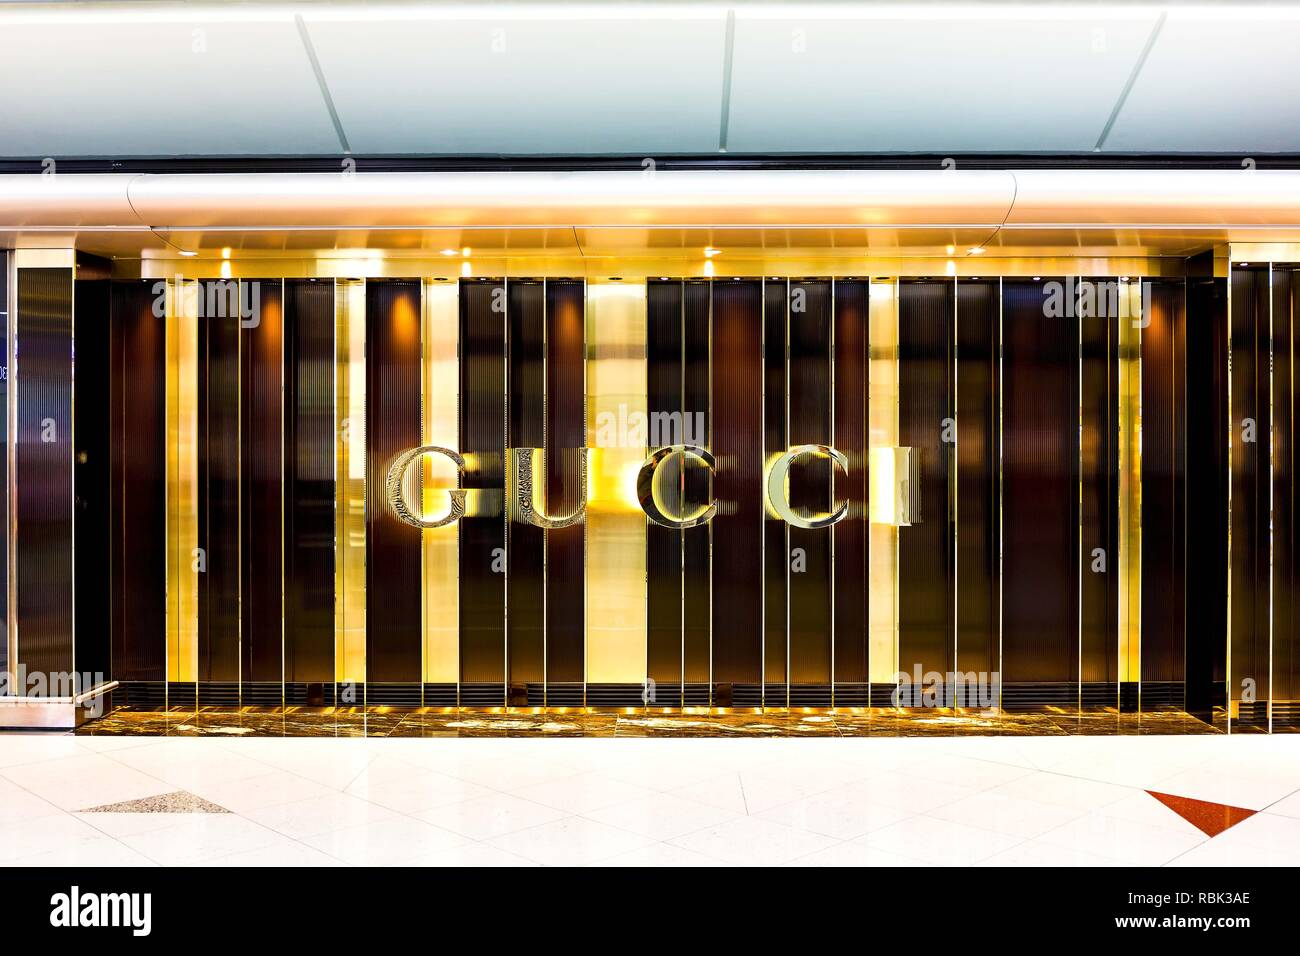 b33454e4d07 A Gucci Shop Stock Photos   A Gucci Shop Stock Images - Page 2 - Alamy